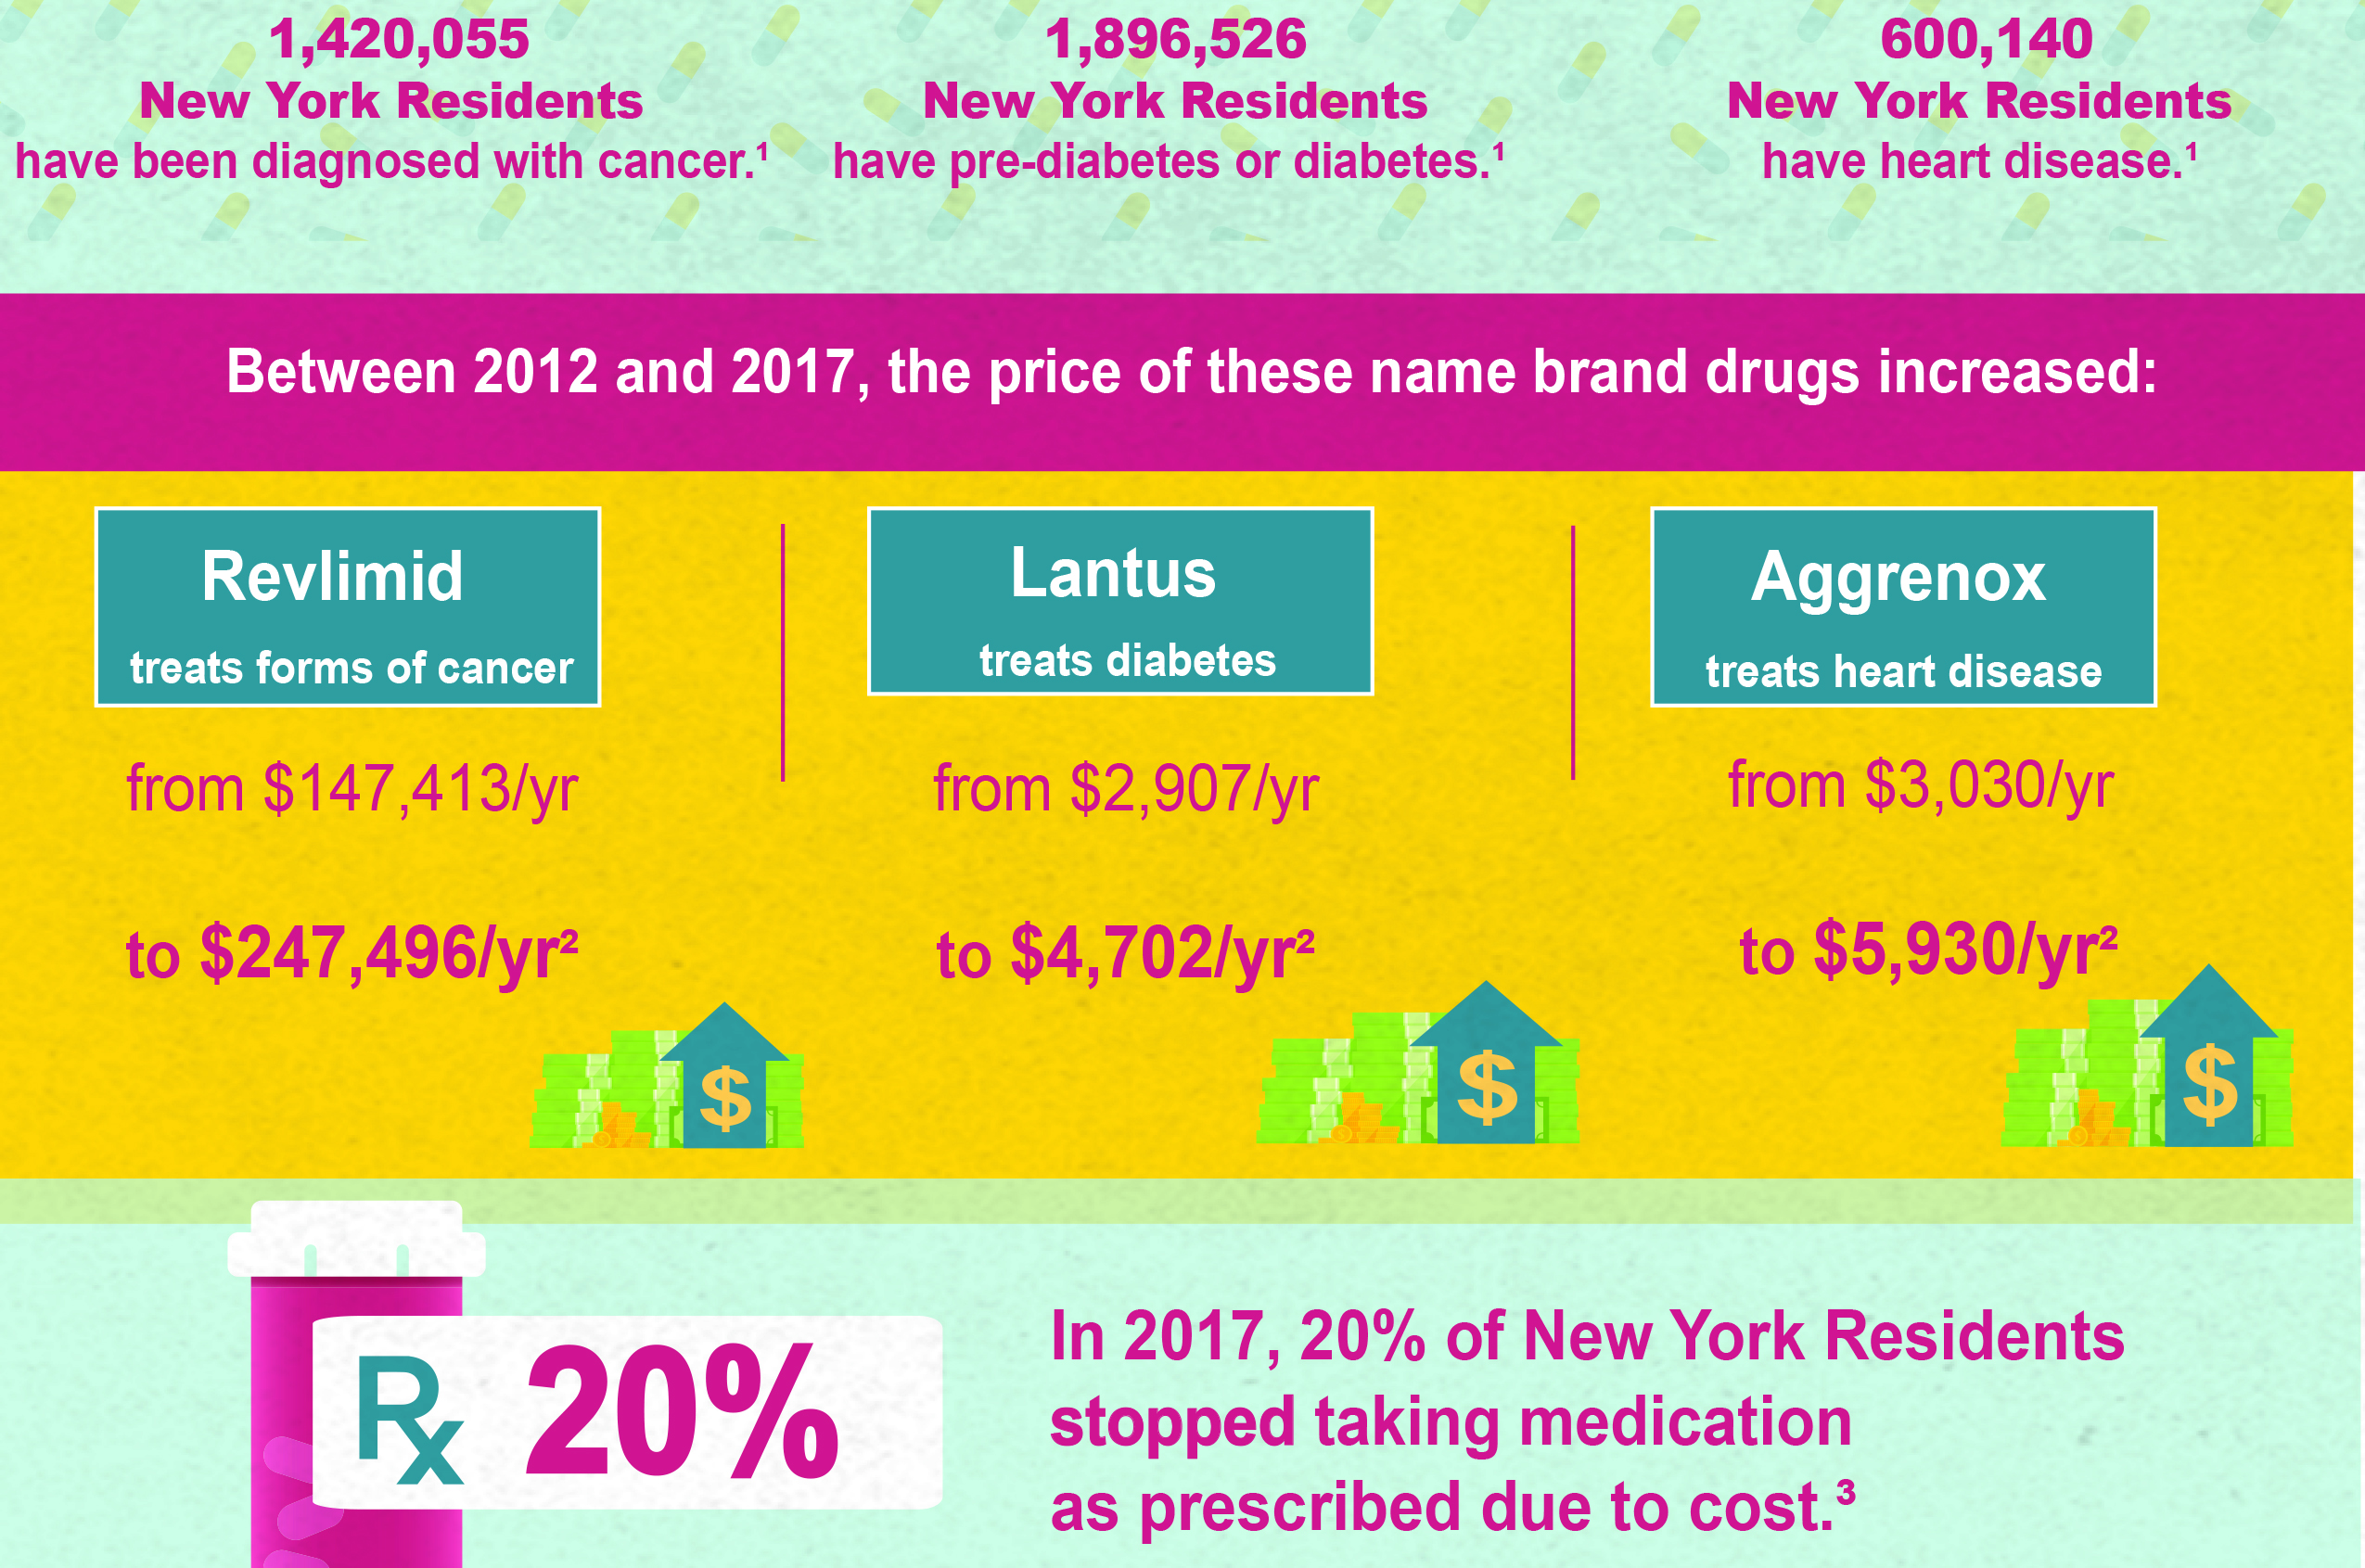 New York Rx State Fact Sheet